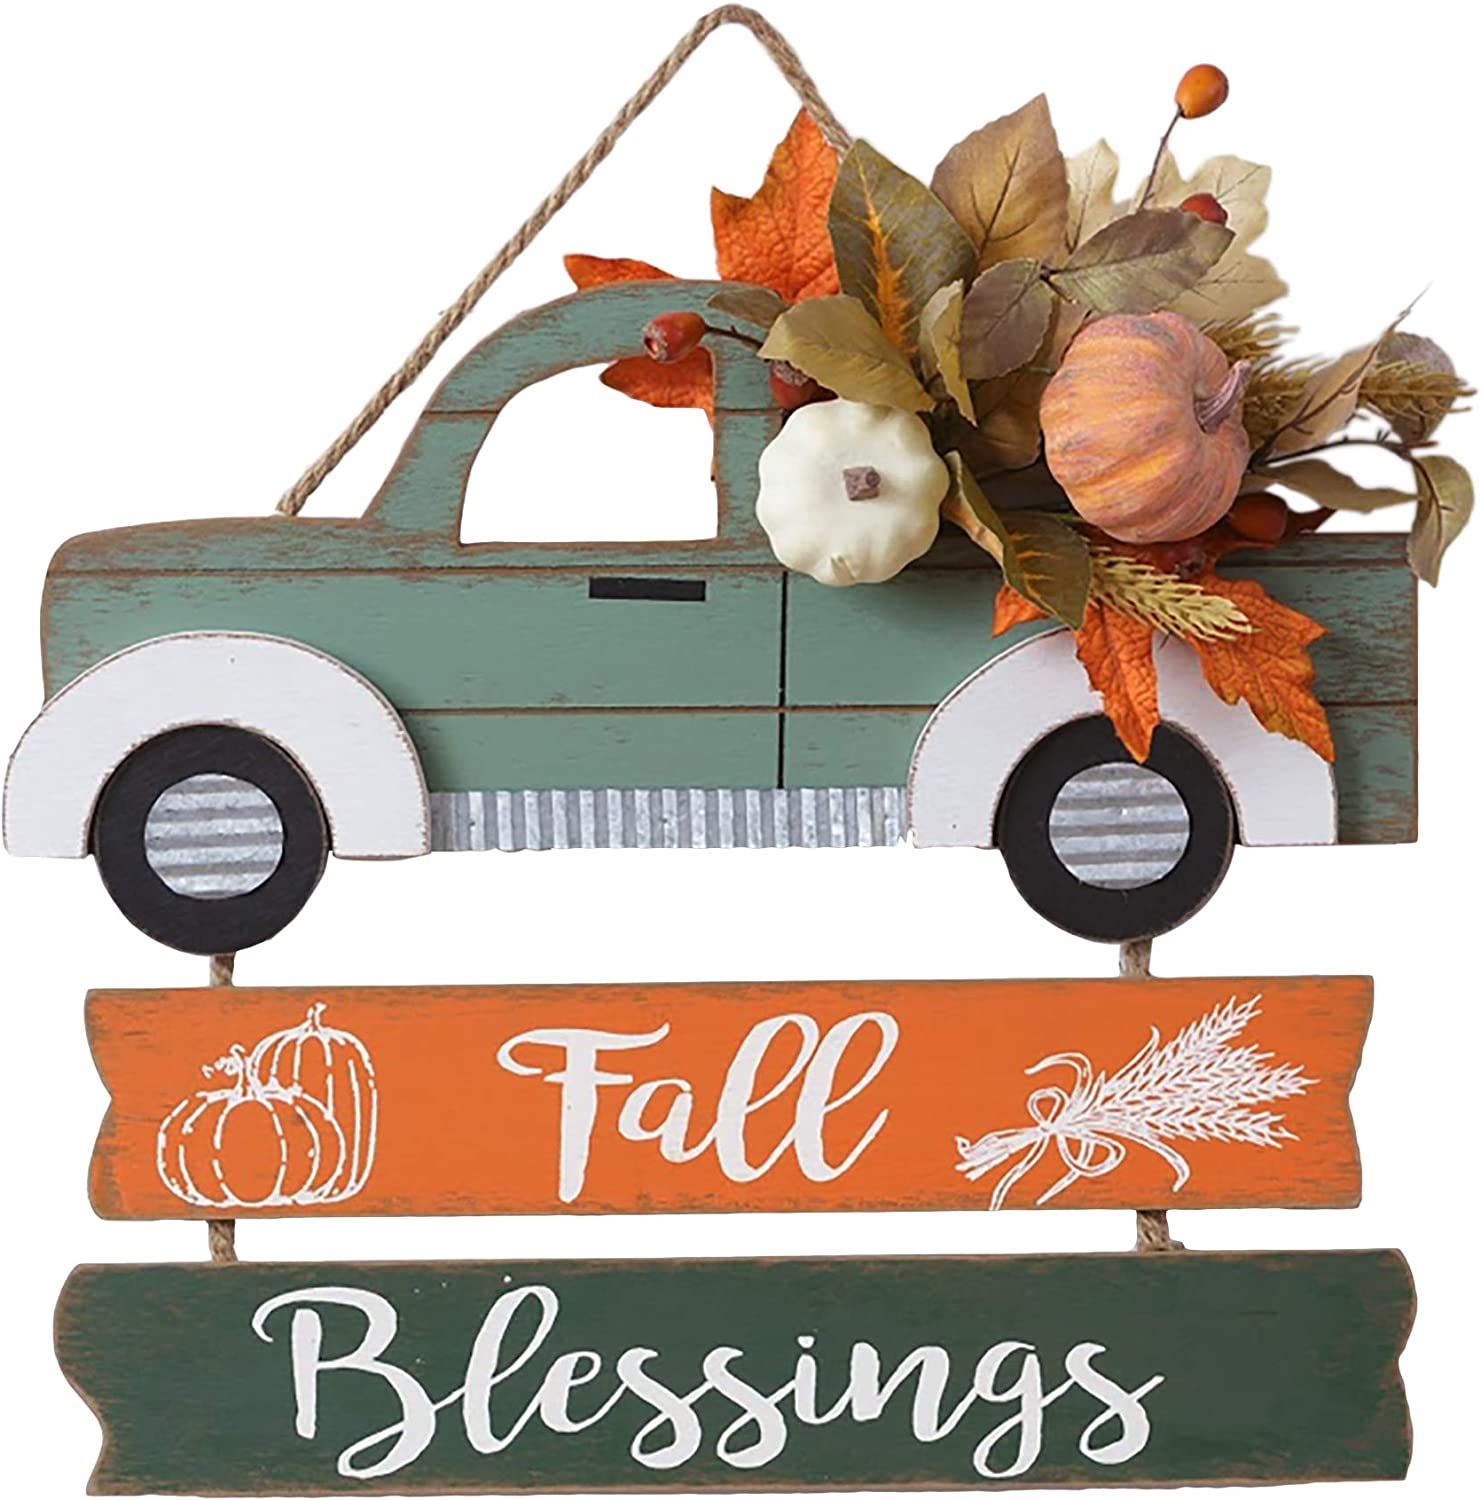 Your Heart's Delight Sign - Fall Blessings